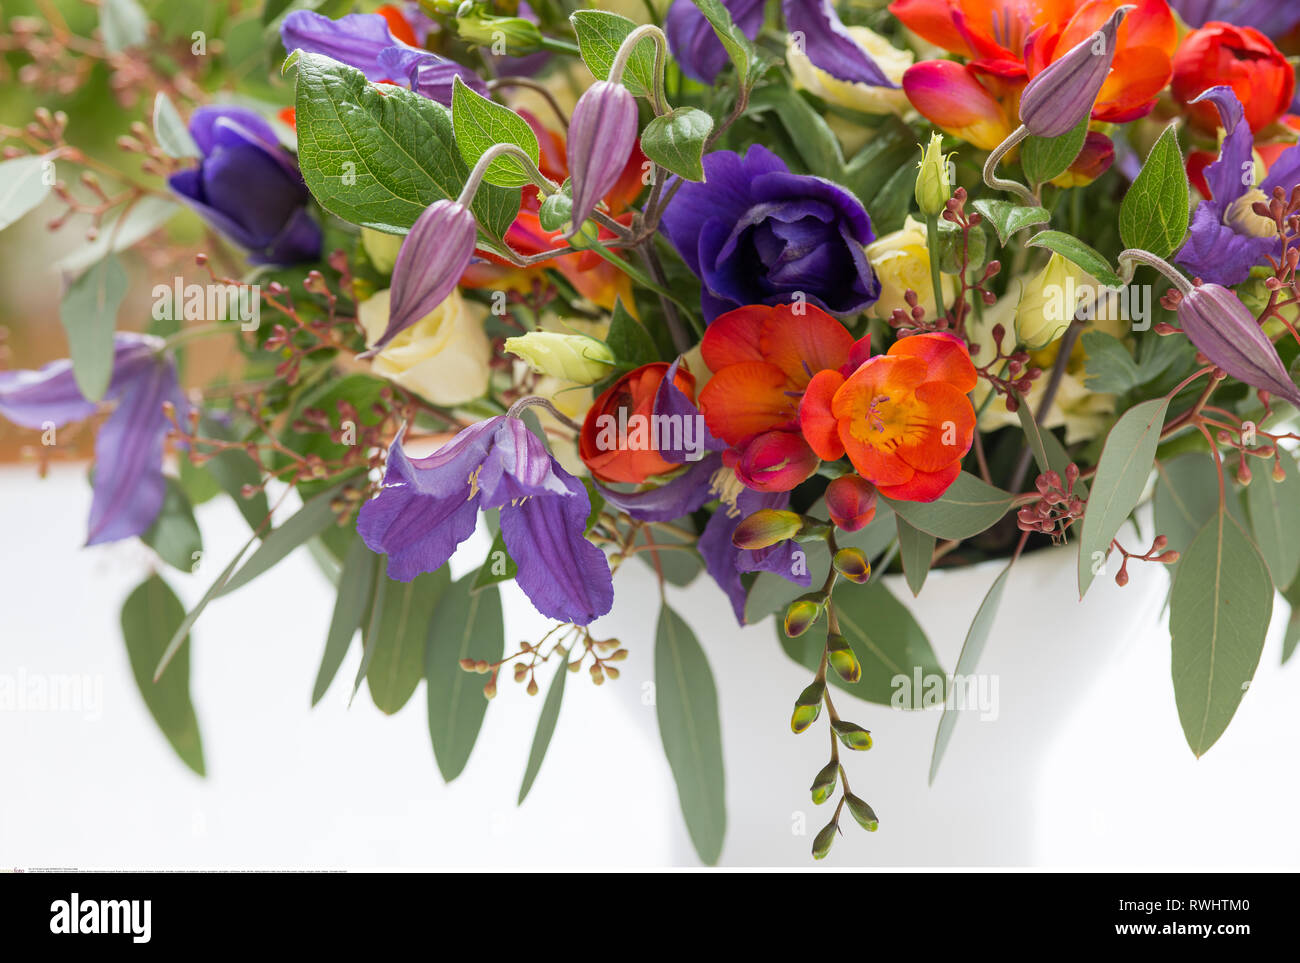 botany, filmier natural flower bouquet, Caution! For Greetingcard-Use / Postcard-Use In German Speaking Countries Certain Restrictions May Apply - Stock Image